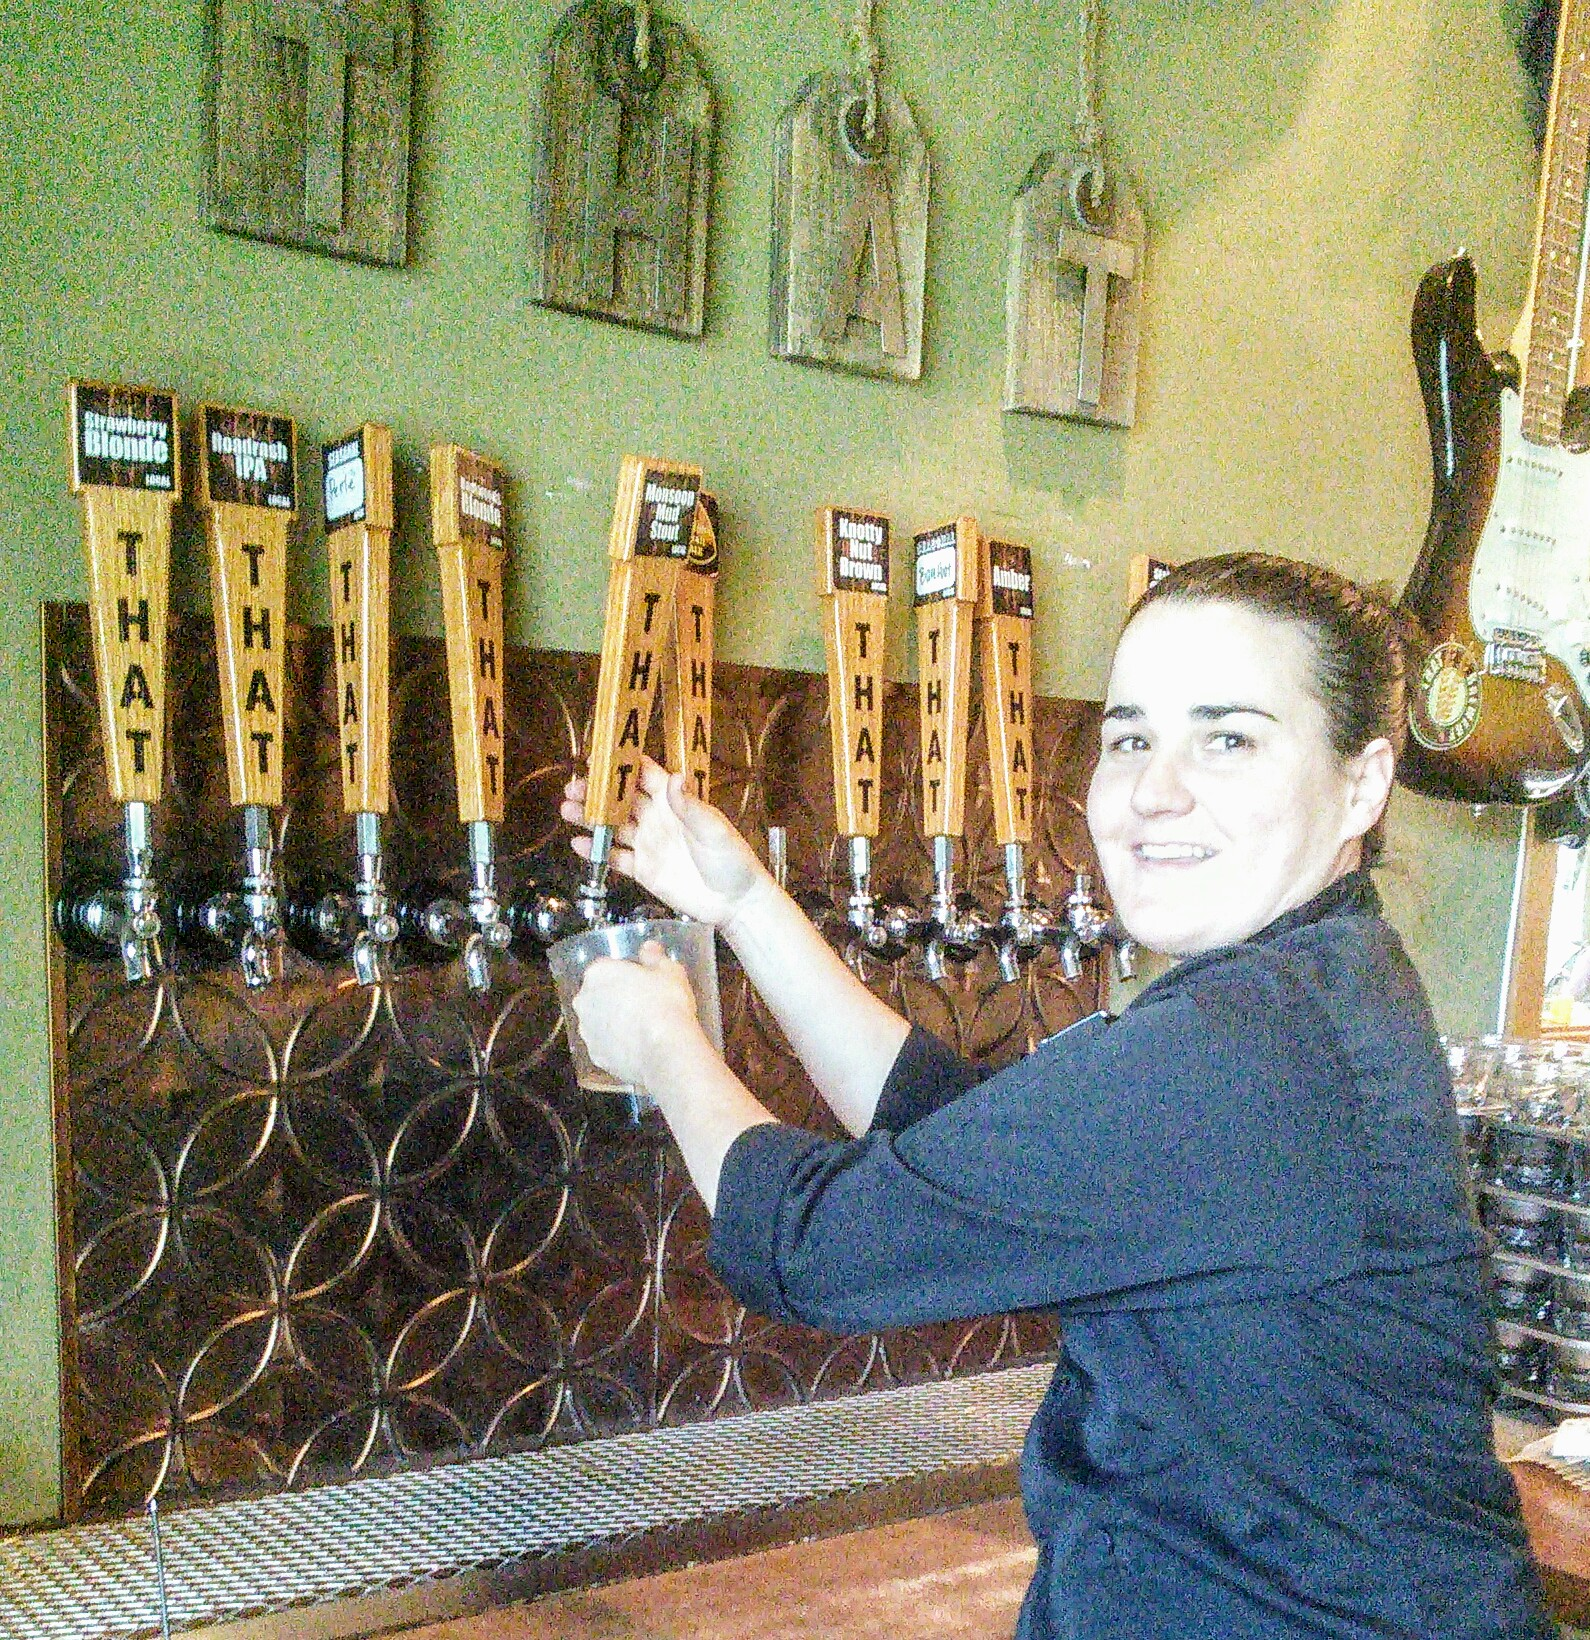 Meet Chef Val At THAT Brewery & Pub In Pine!